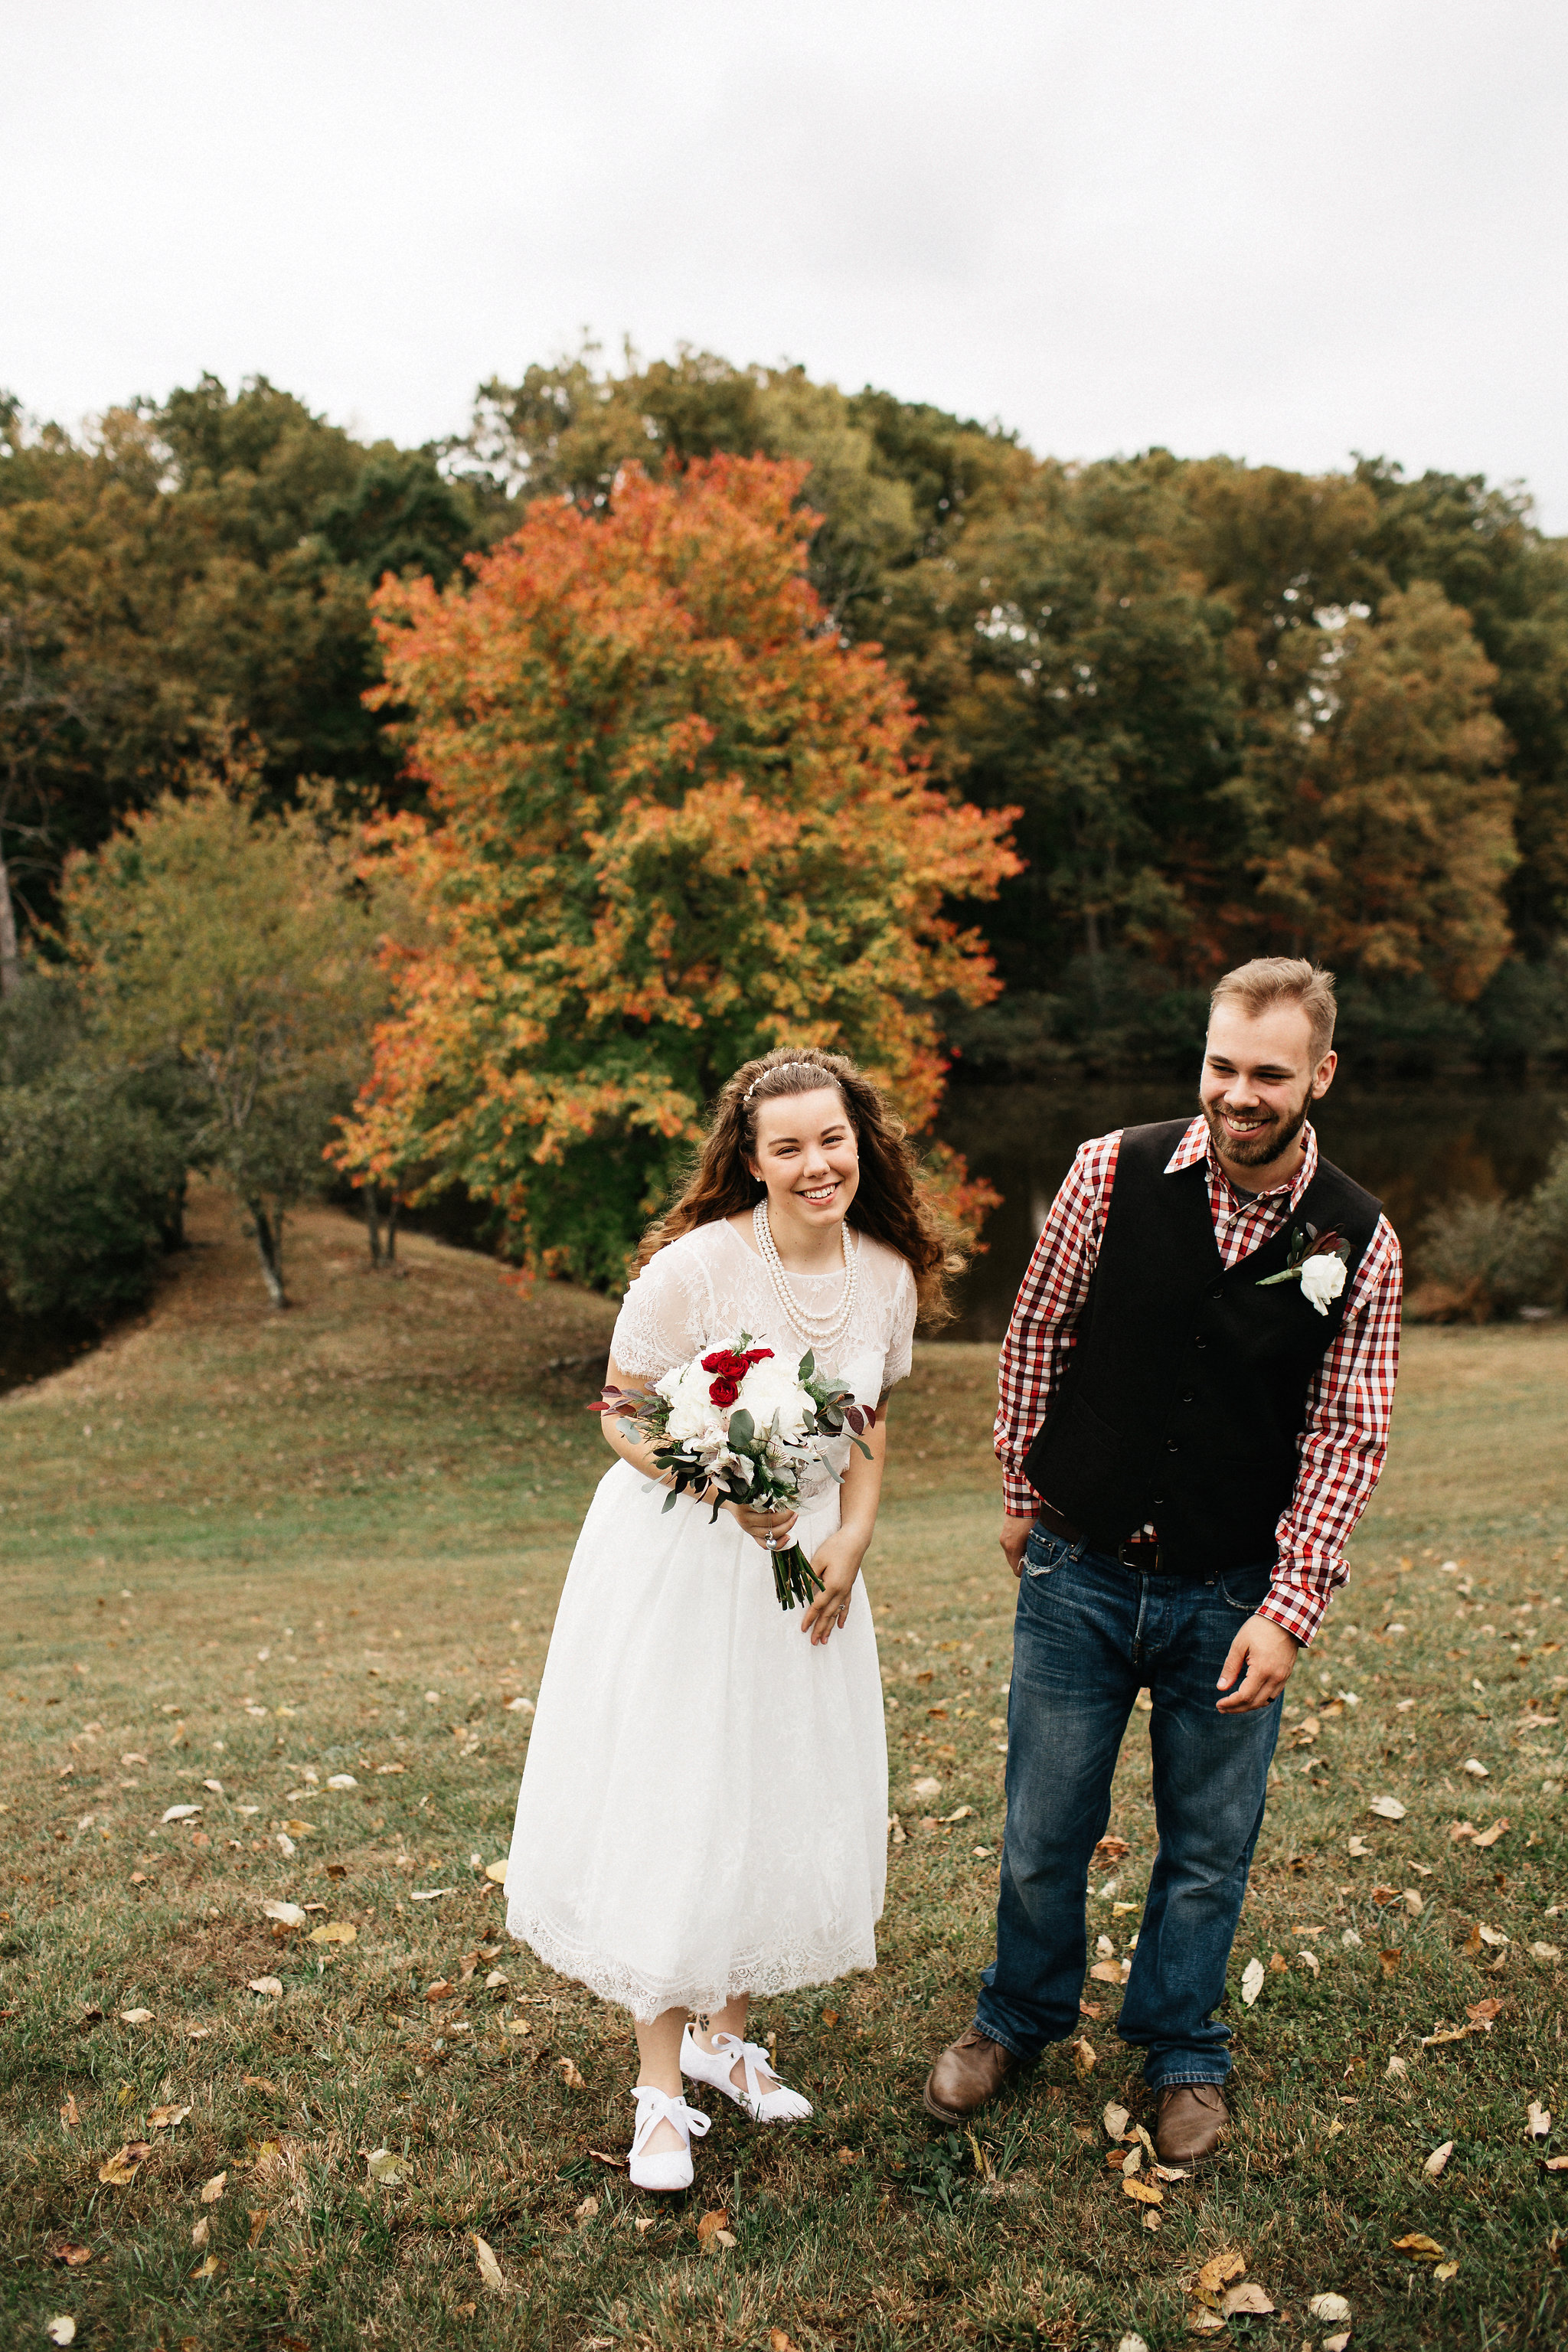 Caitlin&CodyMarried2017-11-03at19.19.39PM69.jpg